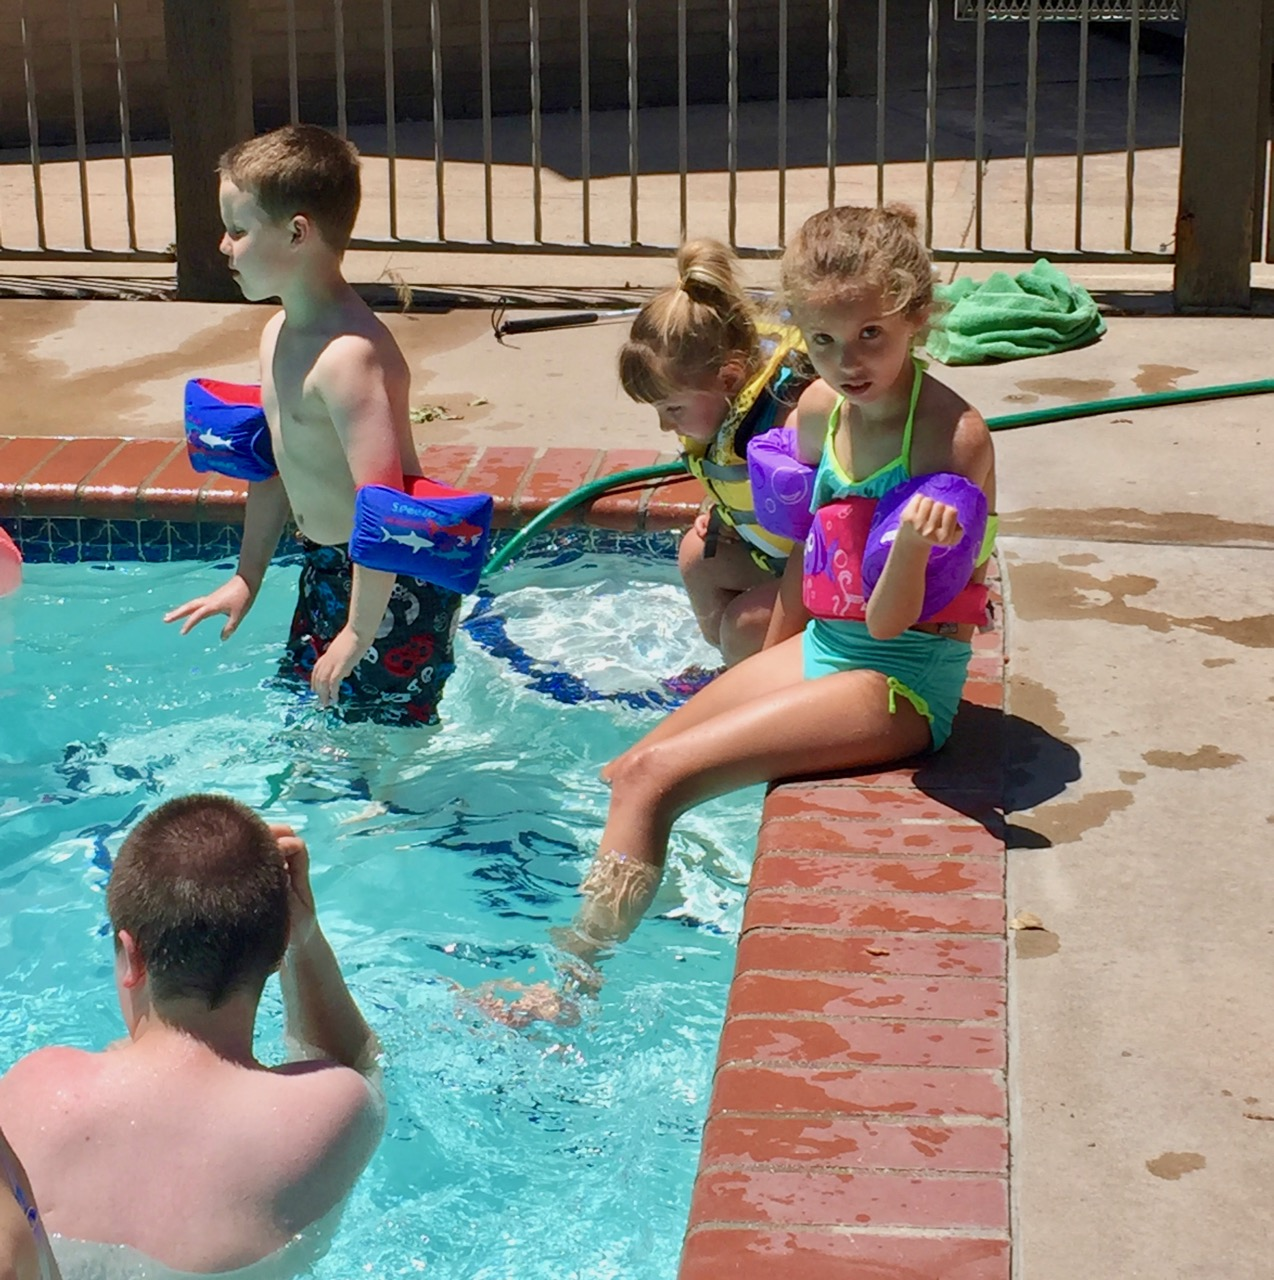 two little girls dangle feet into the pool